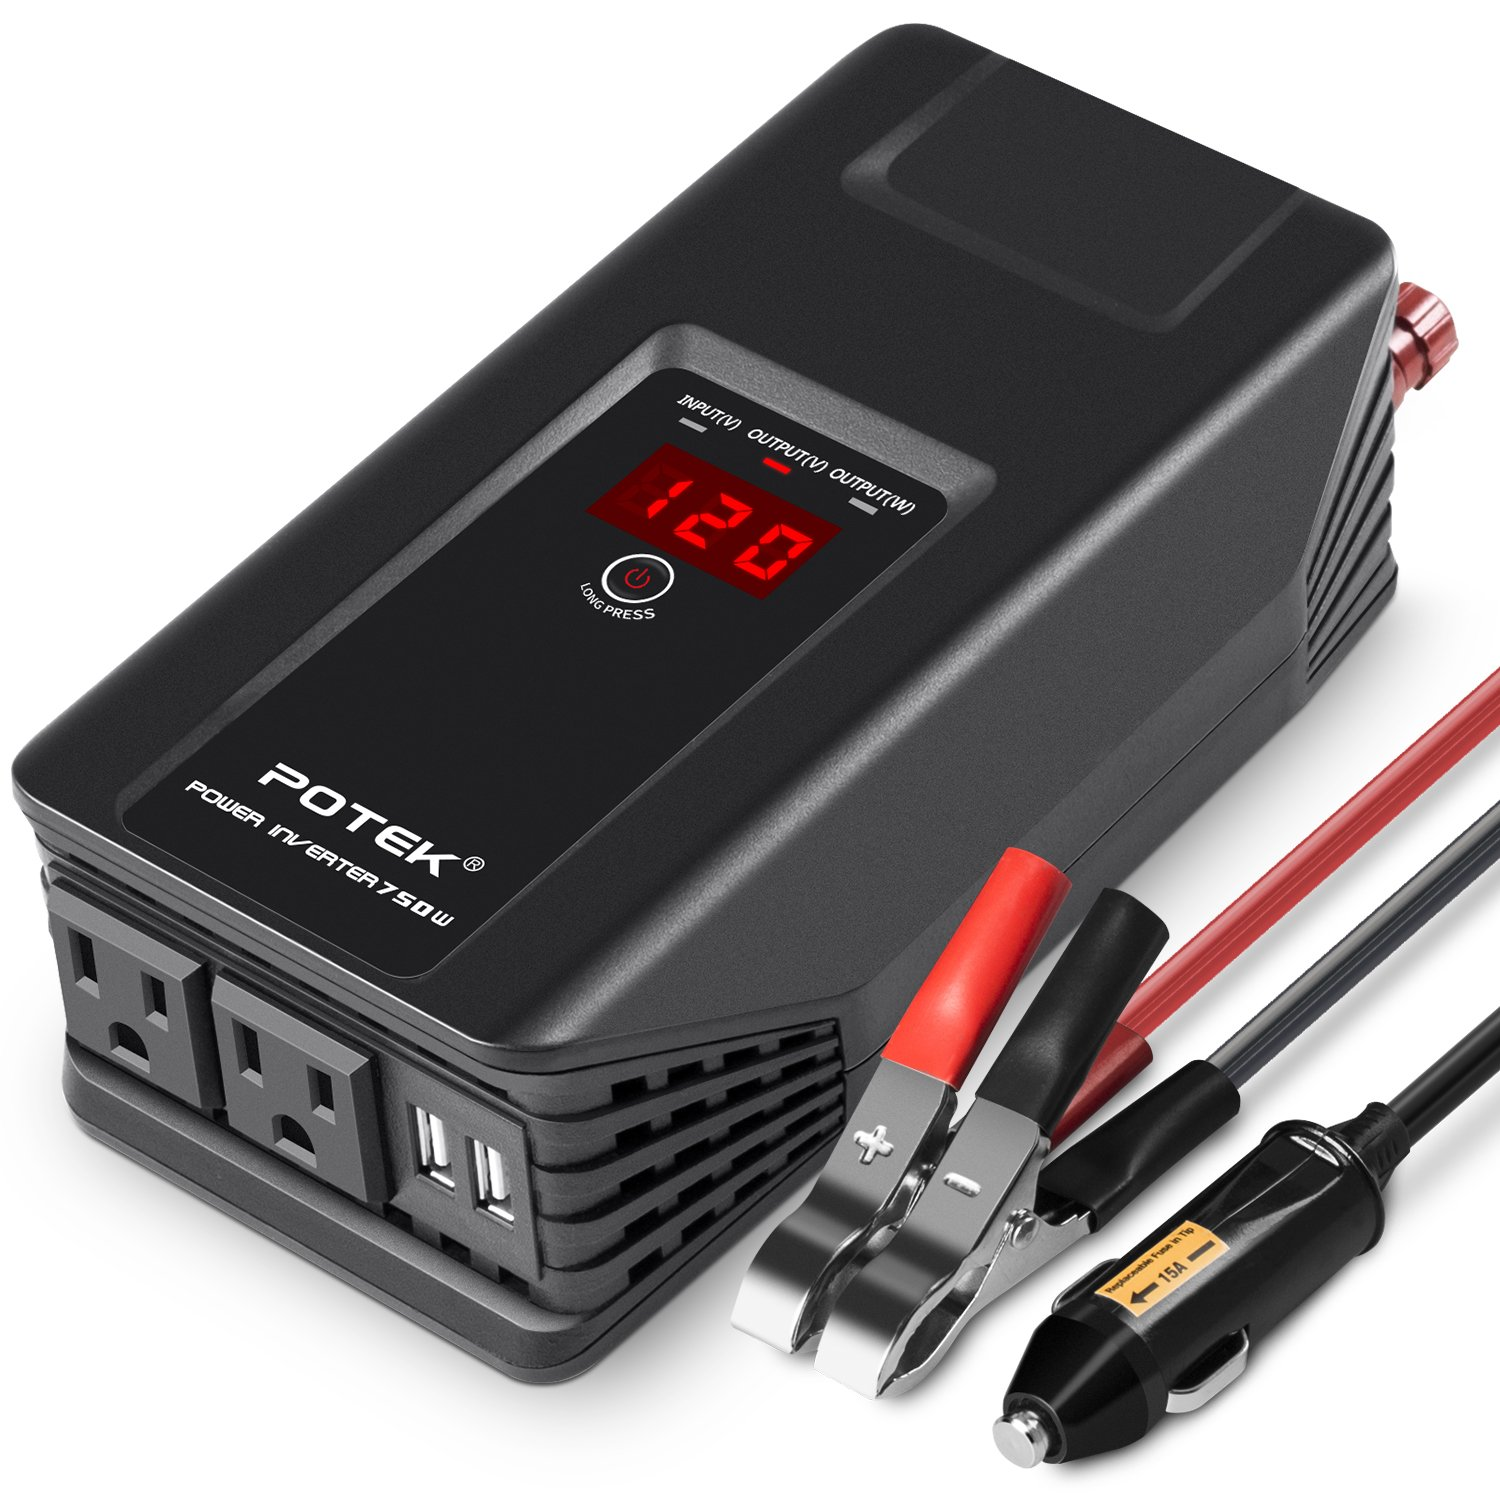 POTEK 750W Power Inverter 12V DC to 110V AC Car Adapter with Two USB and AC Charging Ports for Laptop,Tablet, Smartphone,Camera and More by POTEK